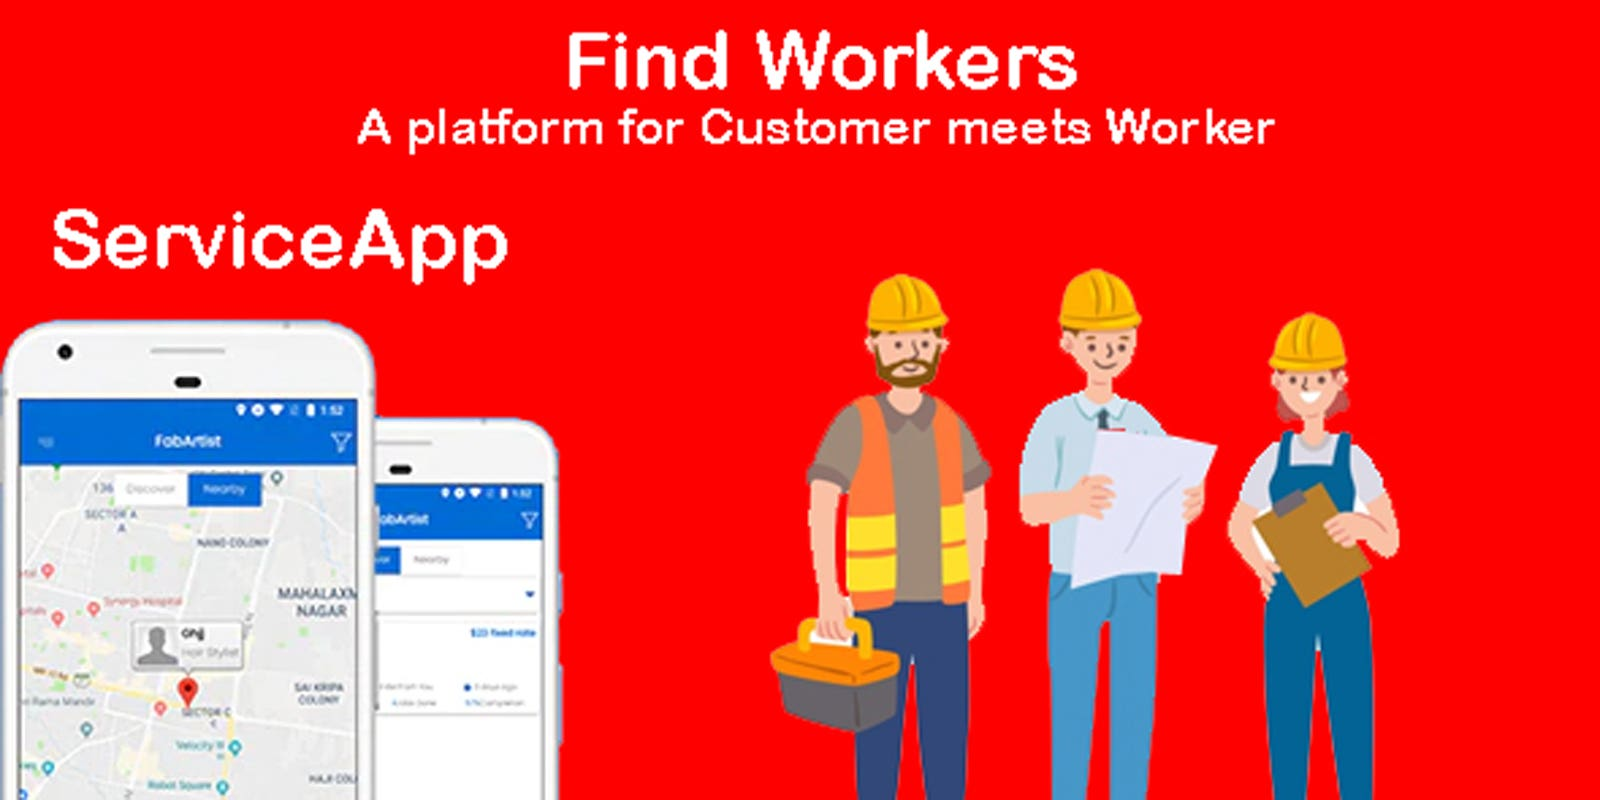 Service App | Hire for worker | Find worker